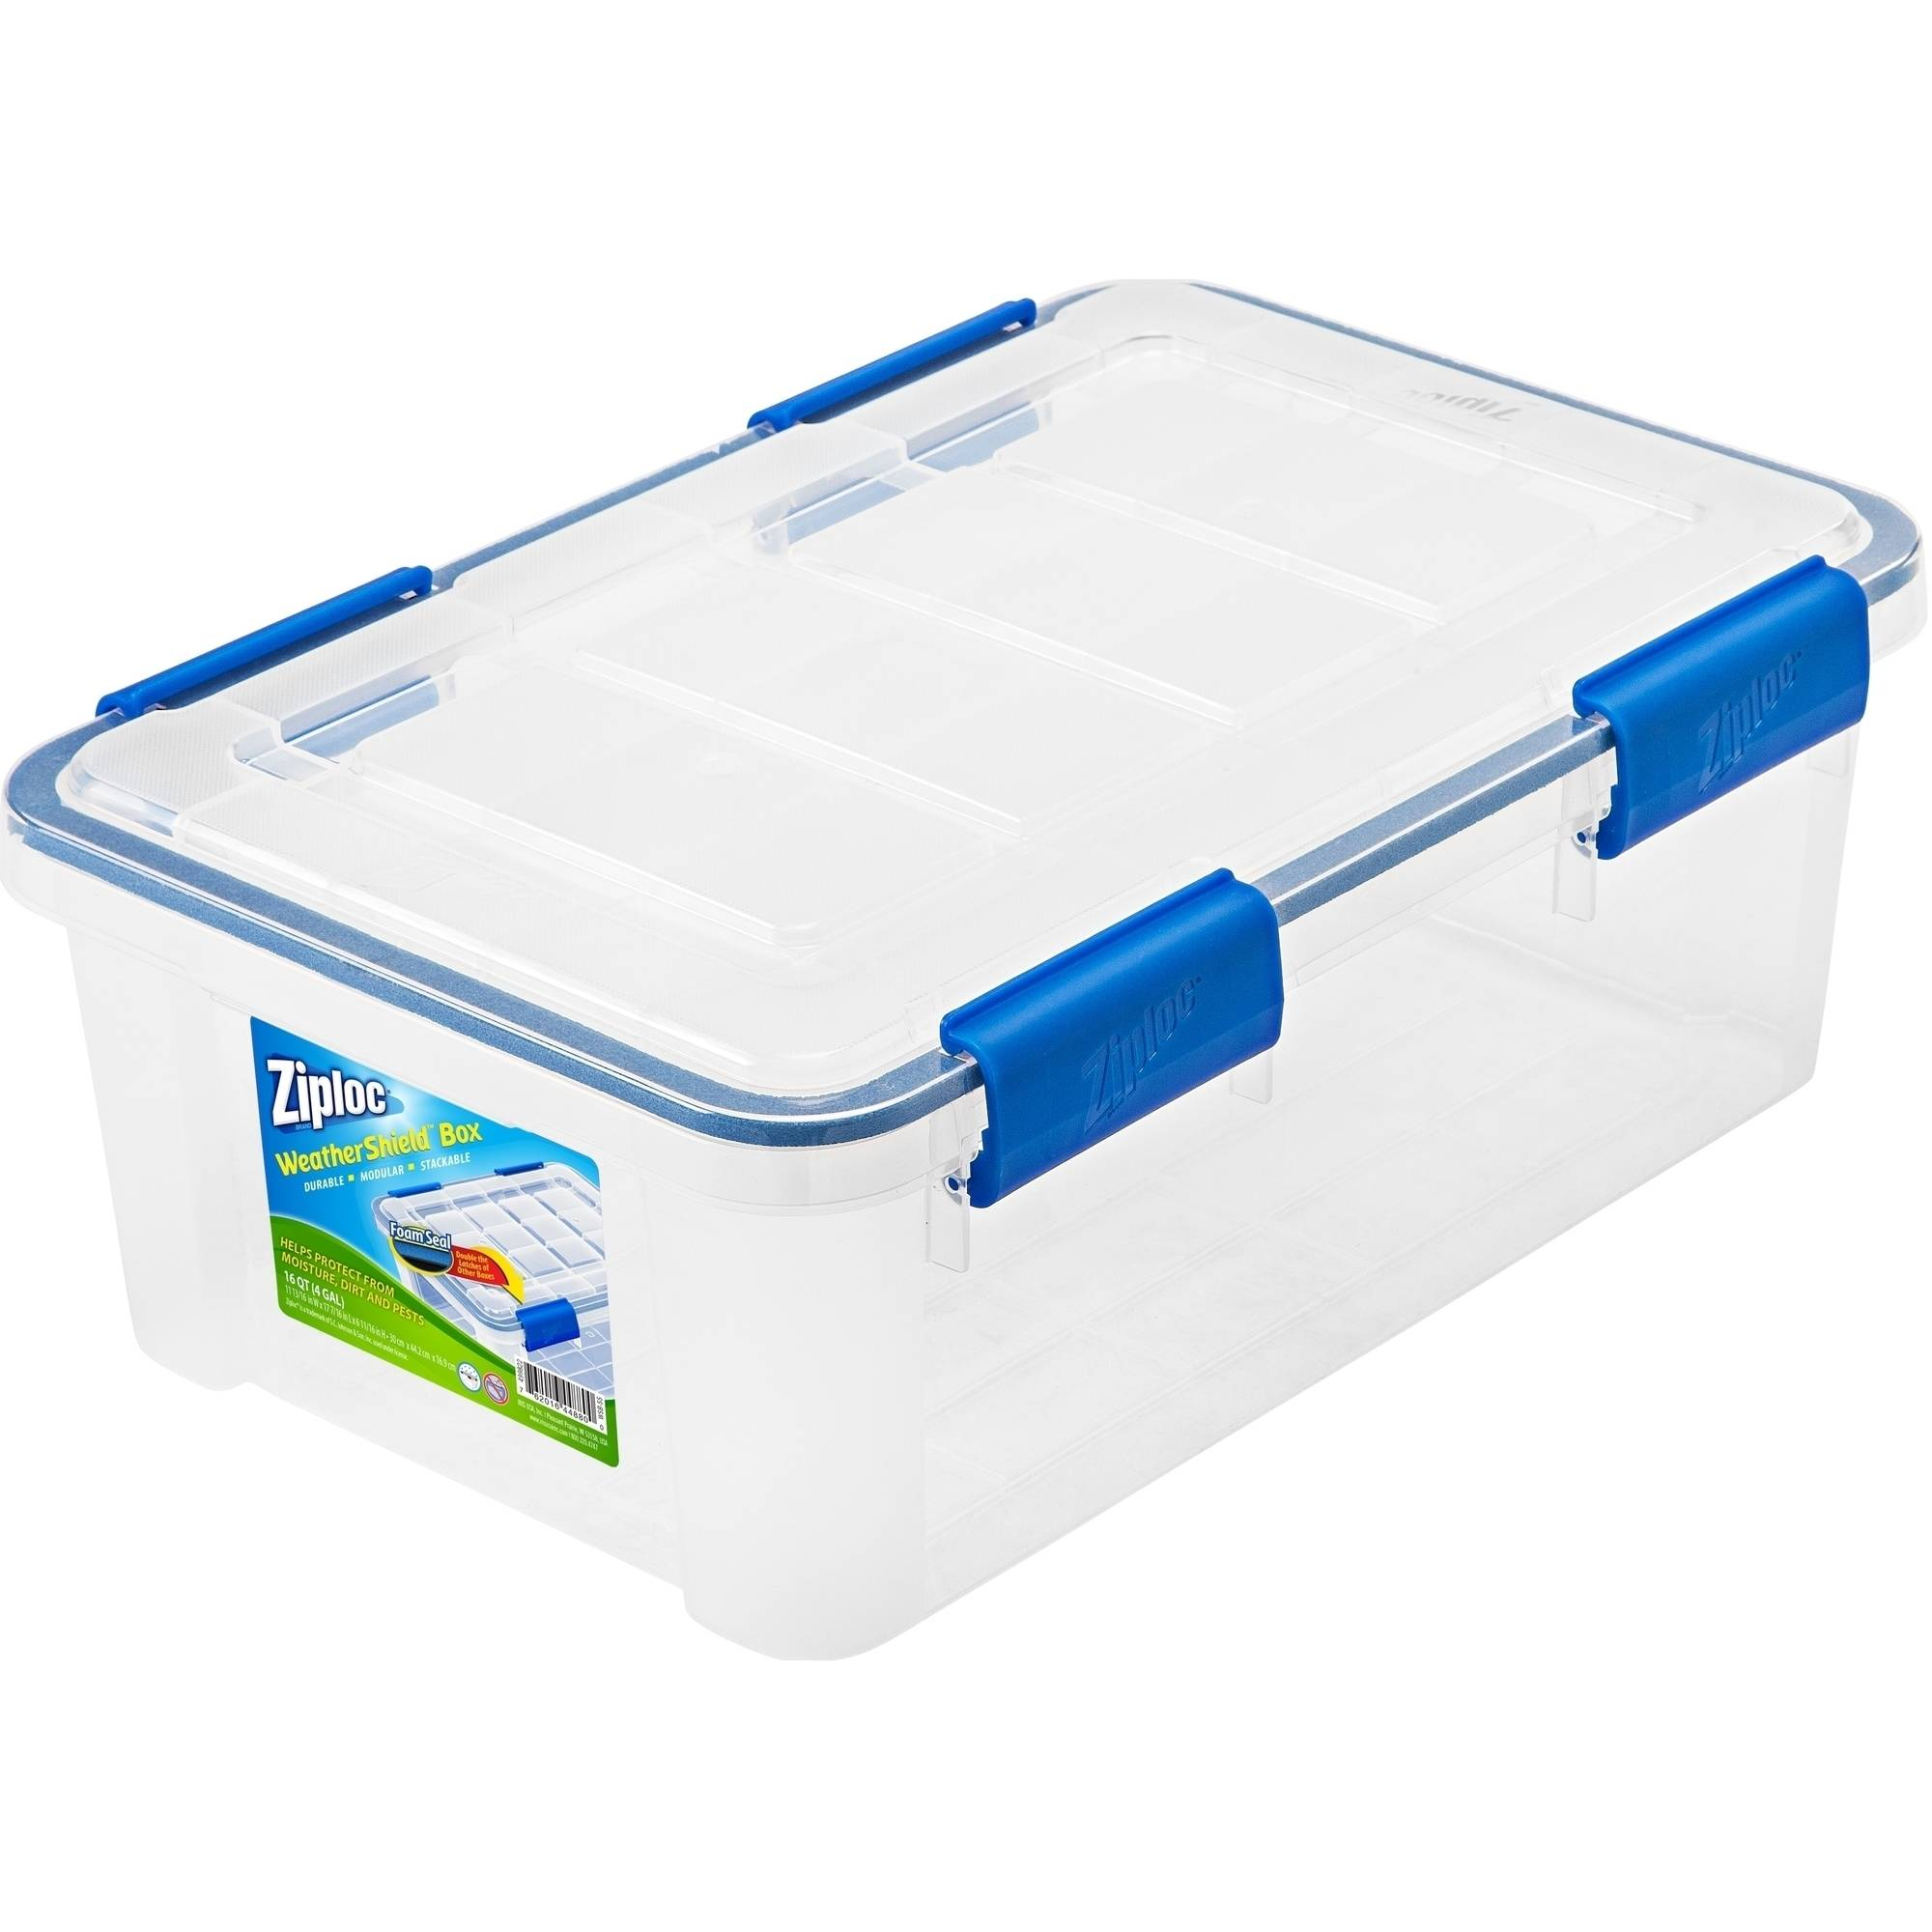 ziploc 16 qt weathershield storage box clear walmart